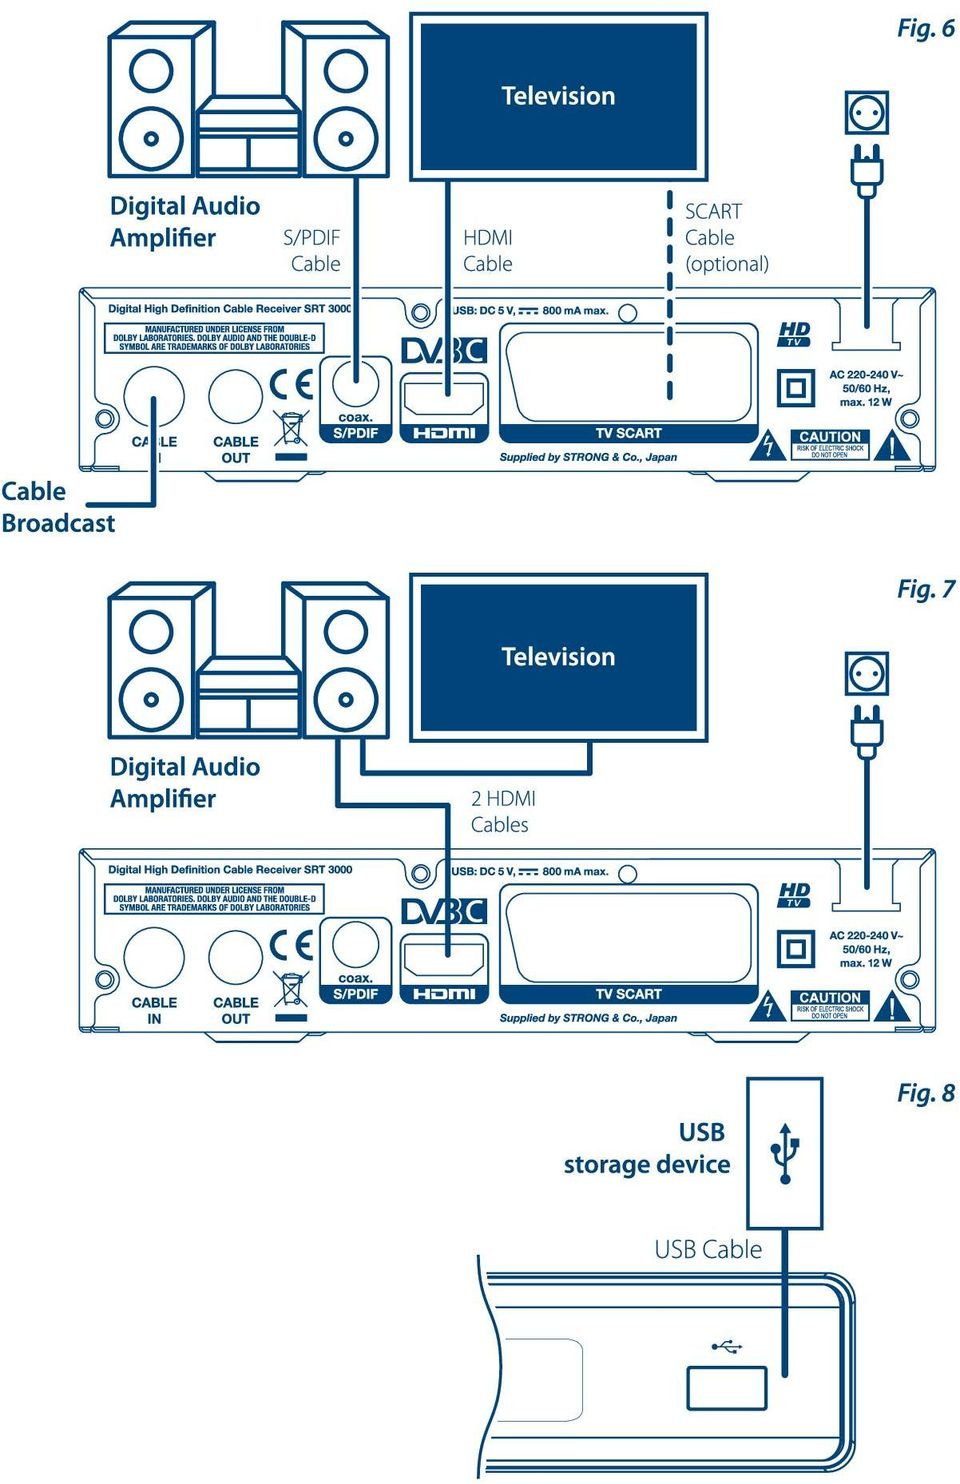 Digital High Definition Cable Receiver - PDF